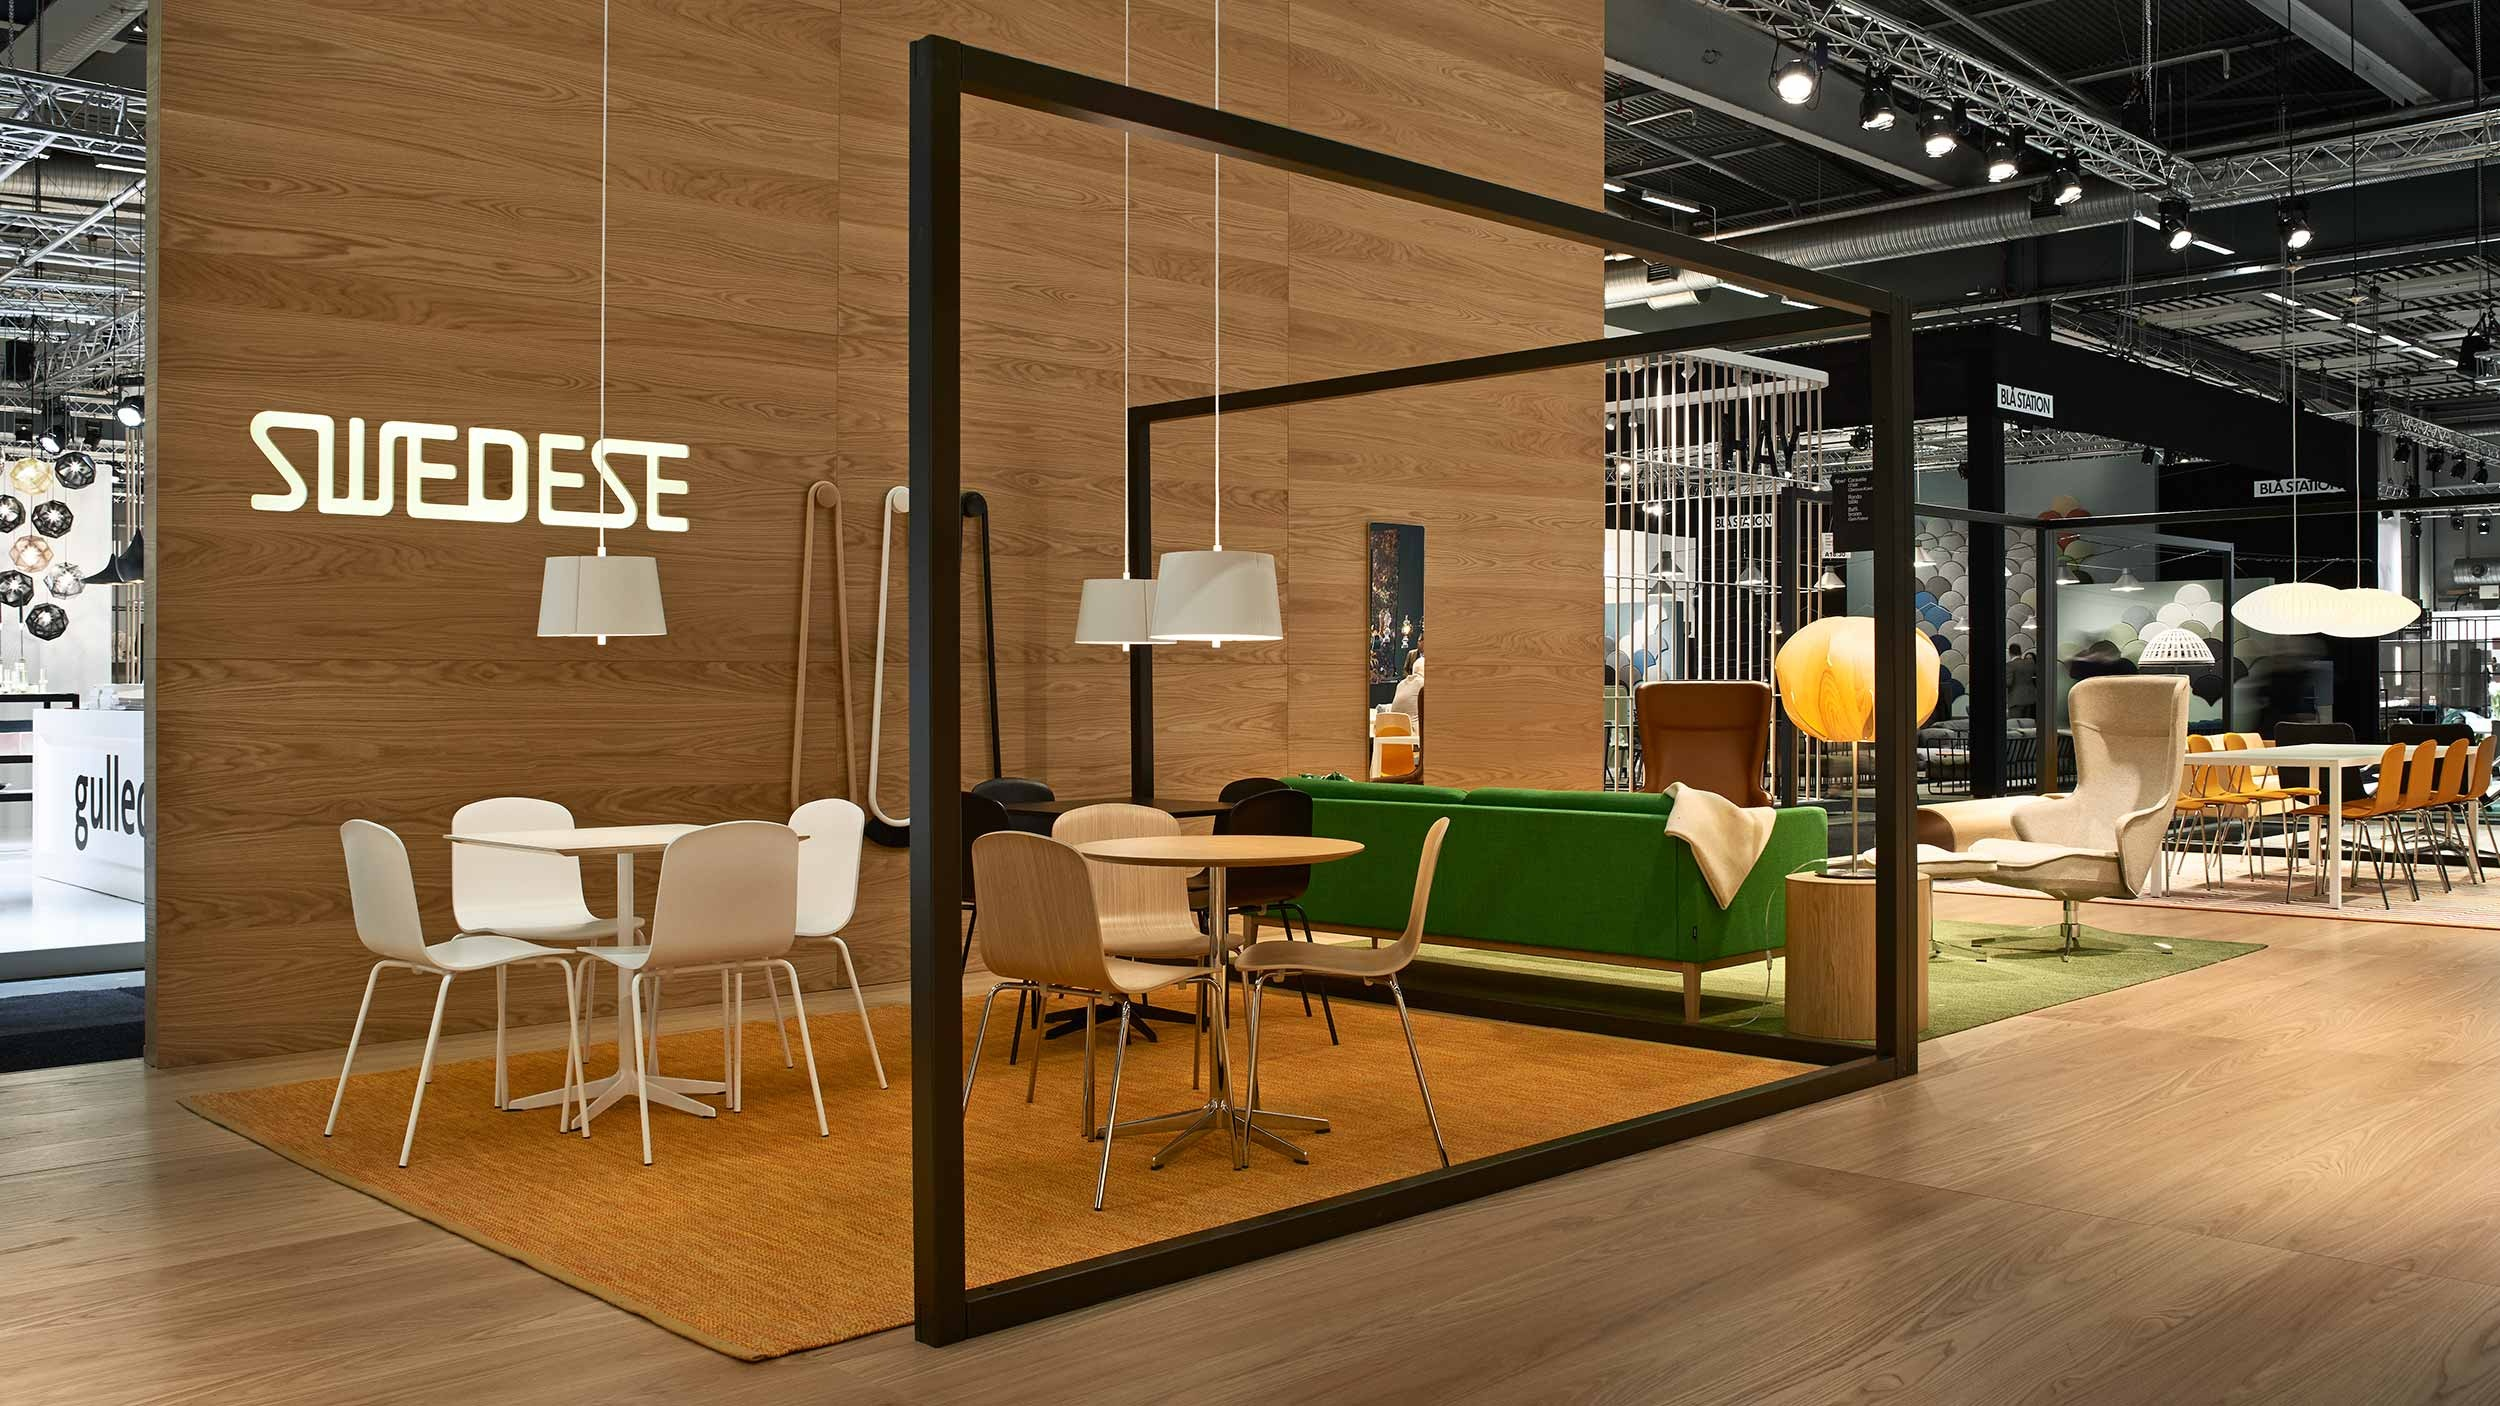 Swedese – exhibition concept